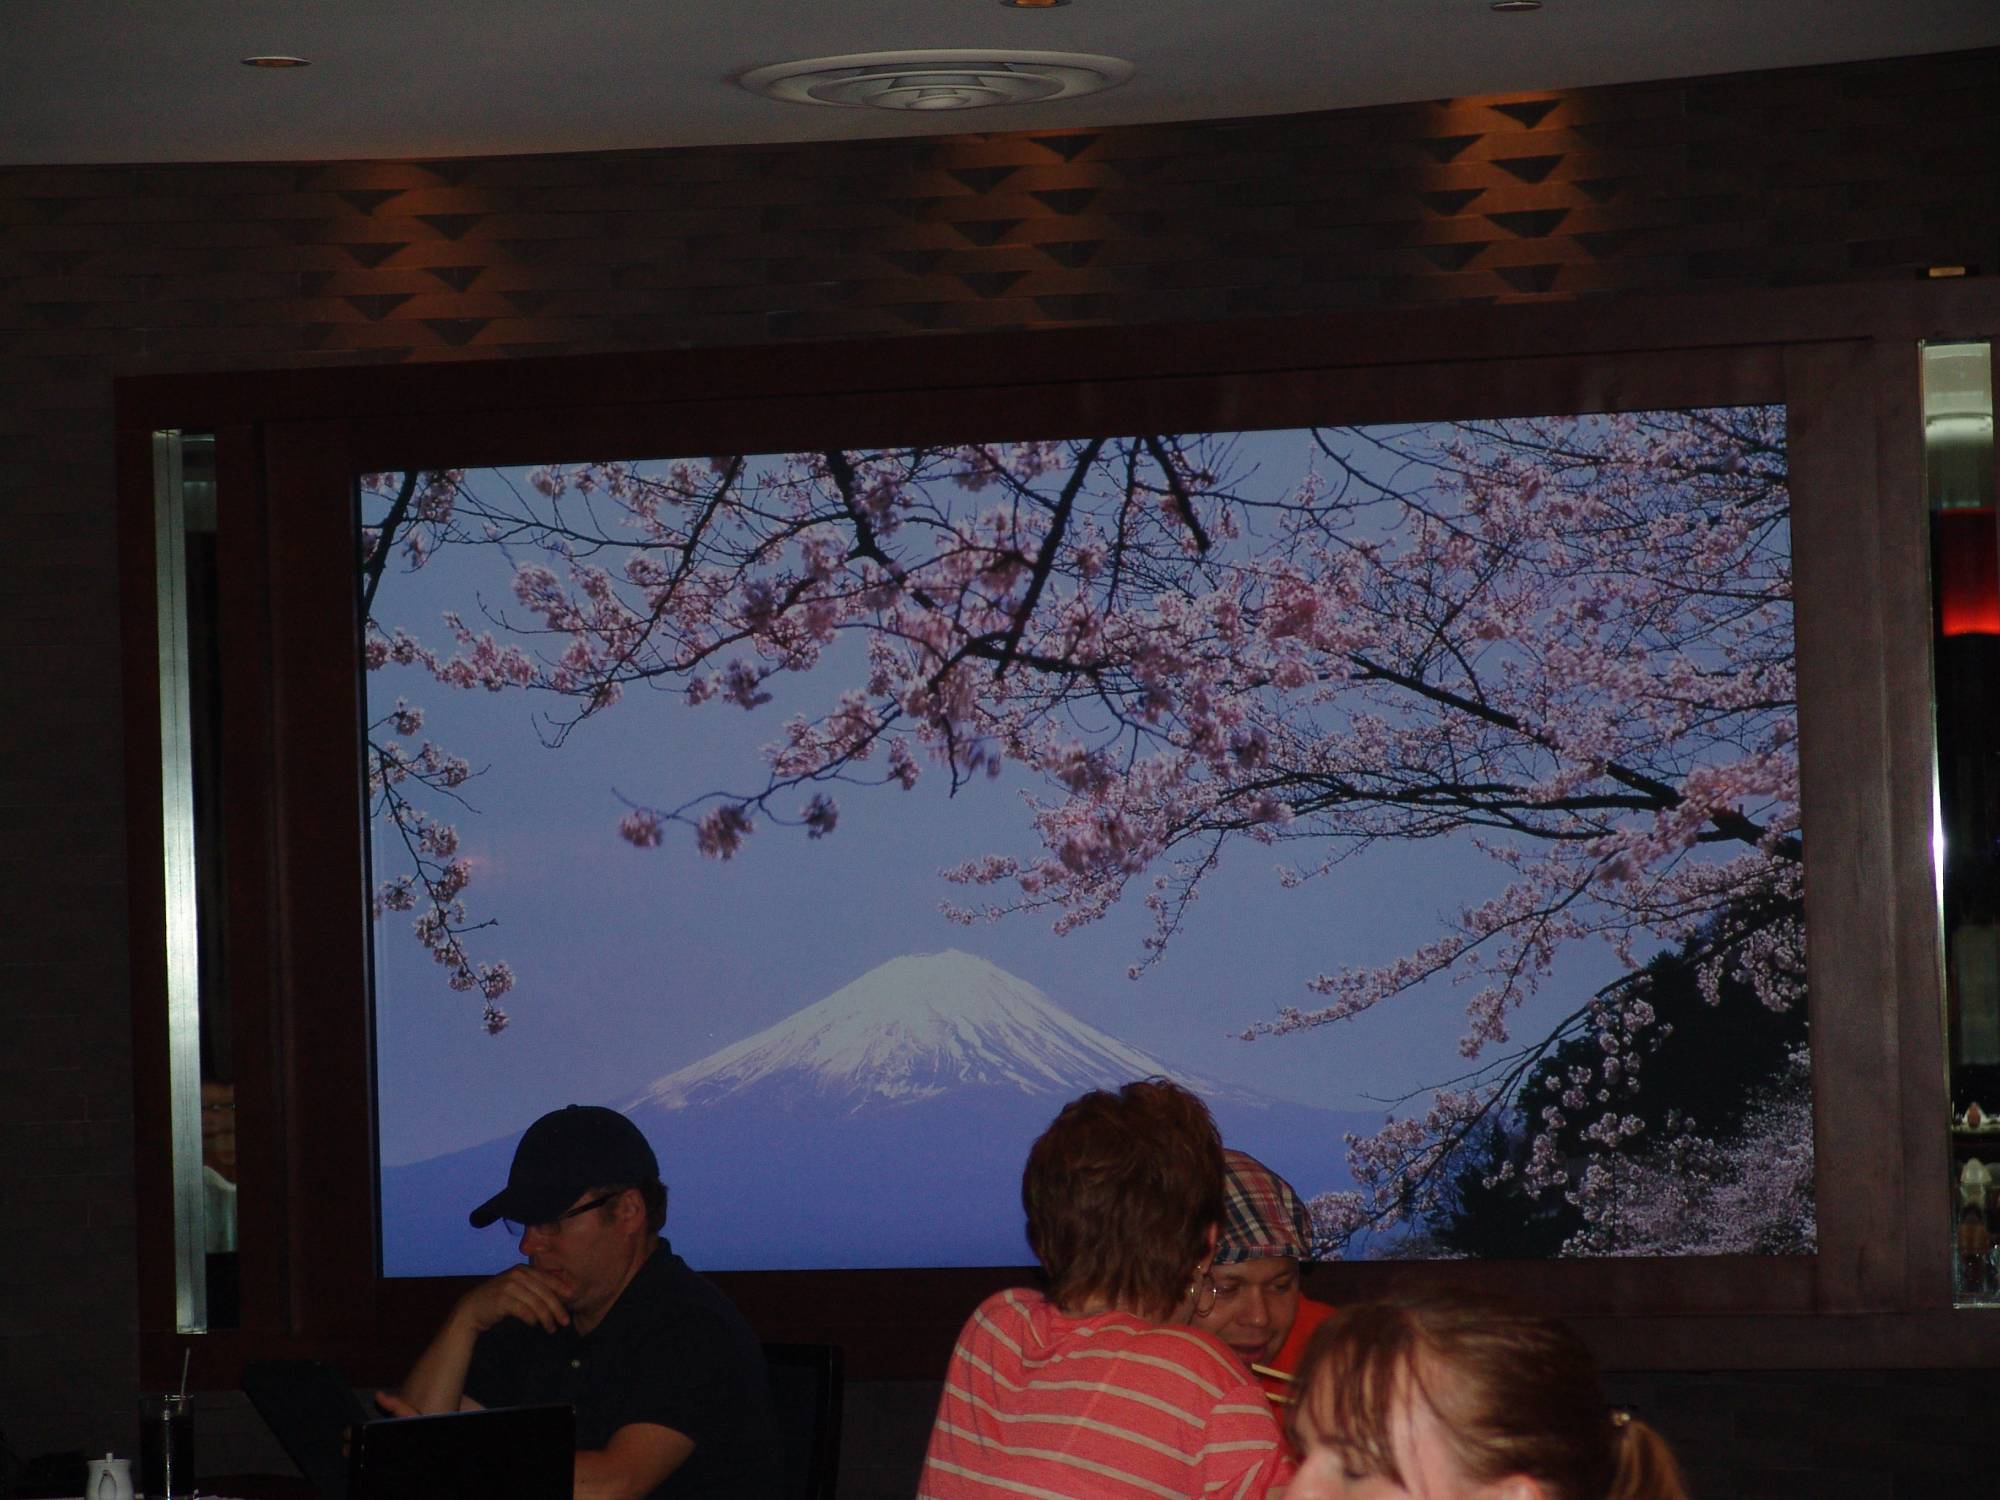 Discover one of Epcot's best kept secrets - Tokyo Dining | PassPorter.com